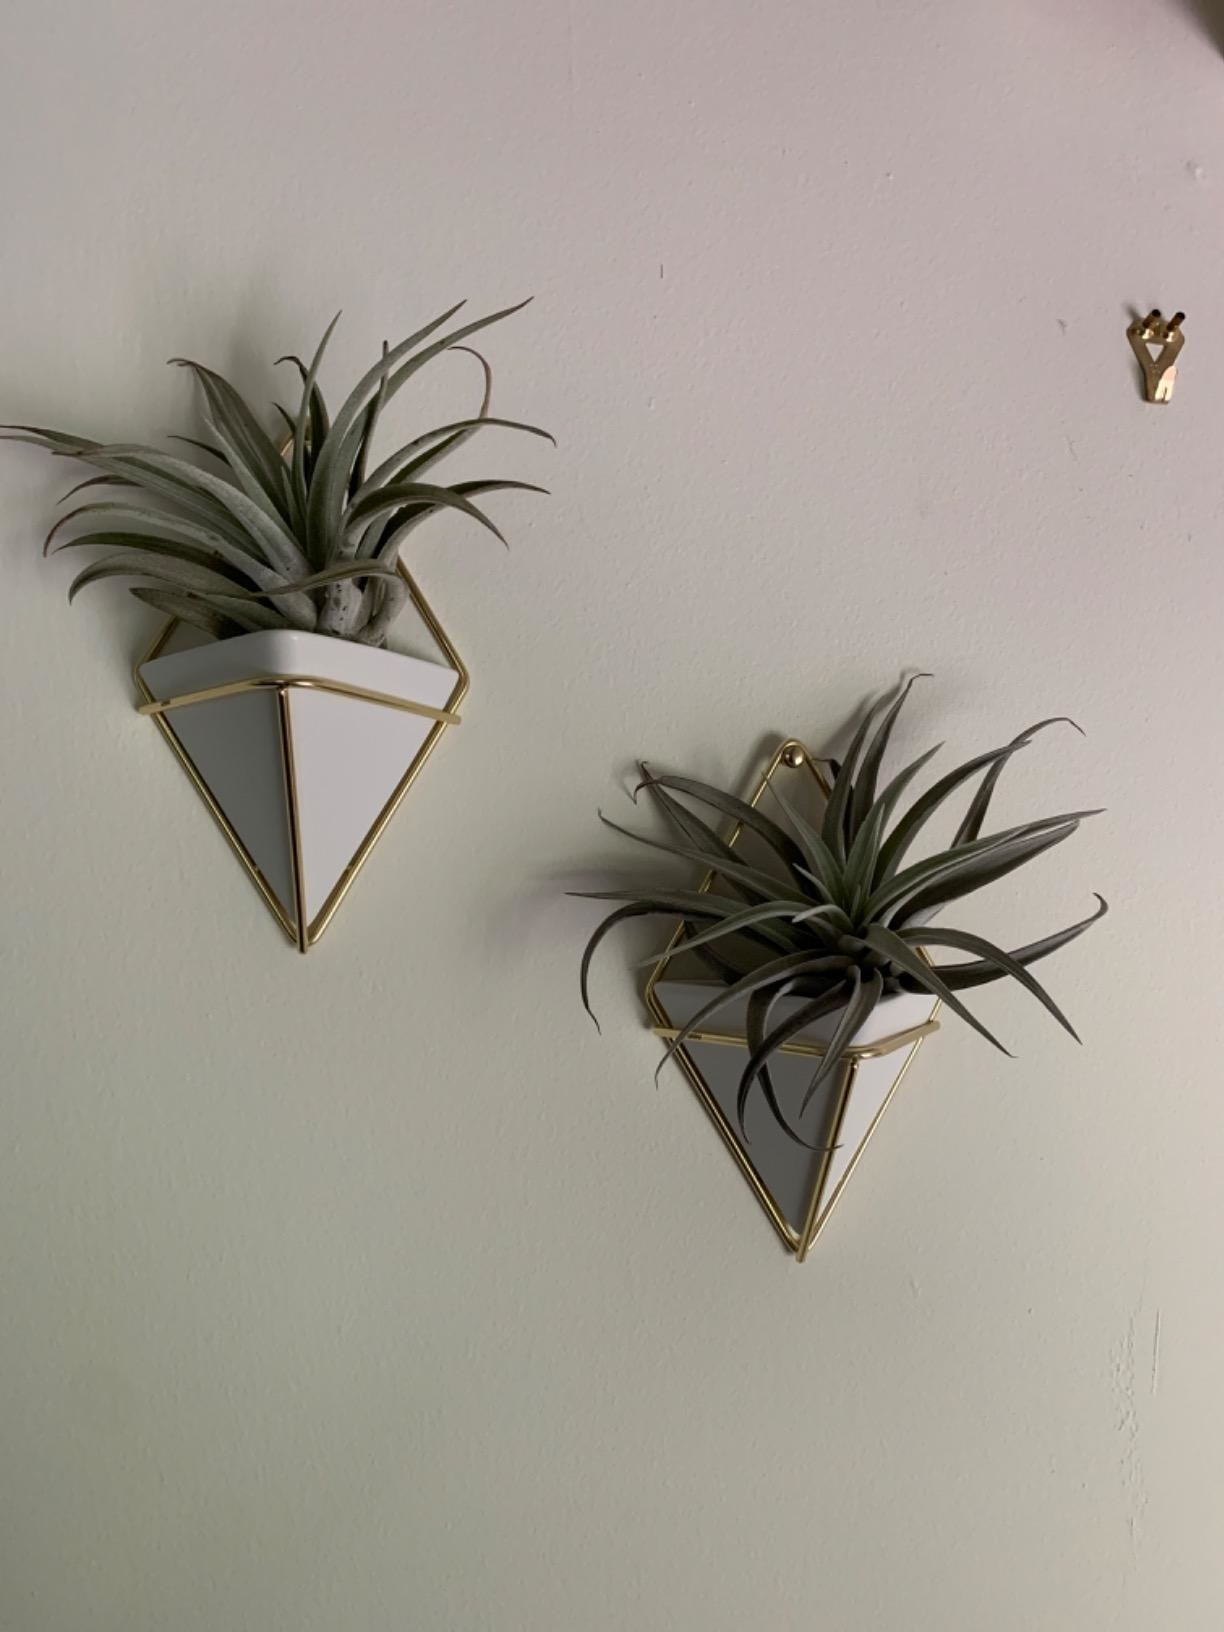 The planters, which have a triangular shape, are made of white ceramic, and hang with gold wire that loops around the planters